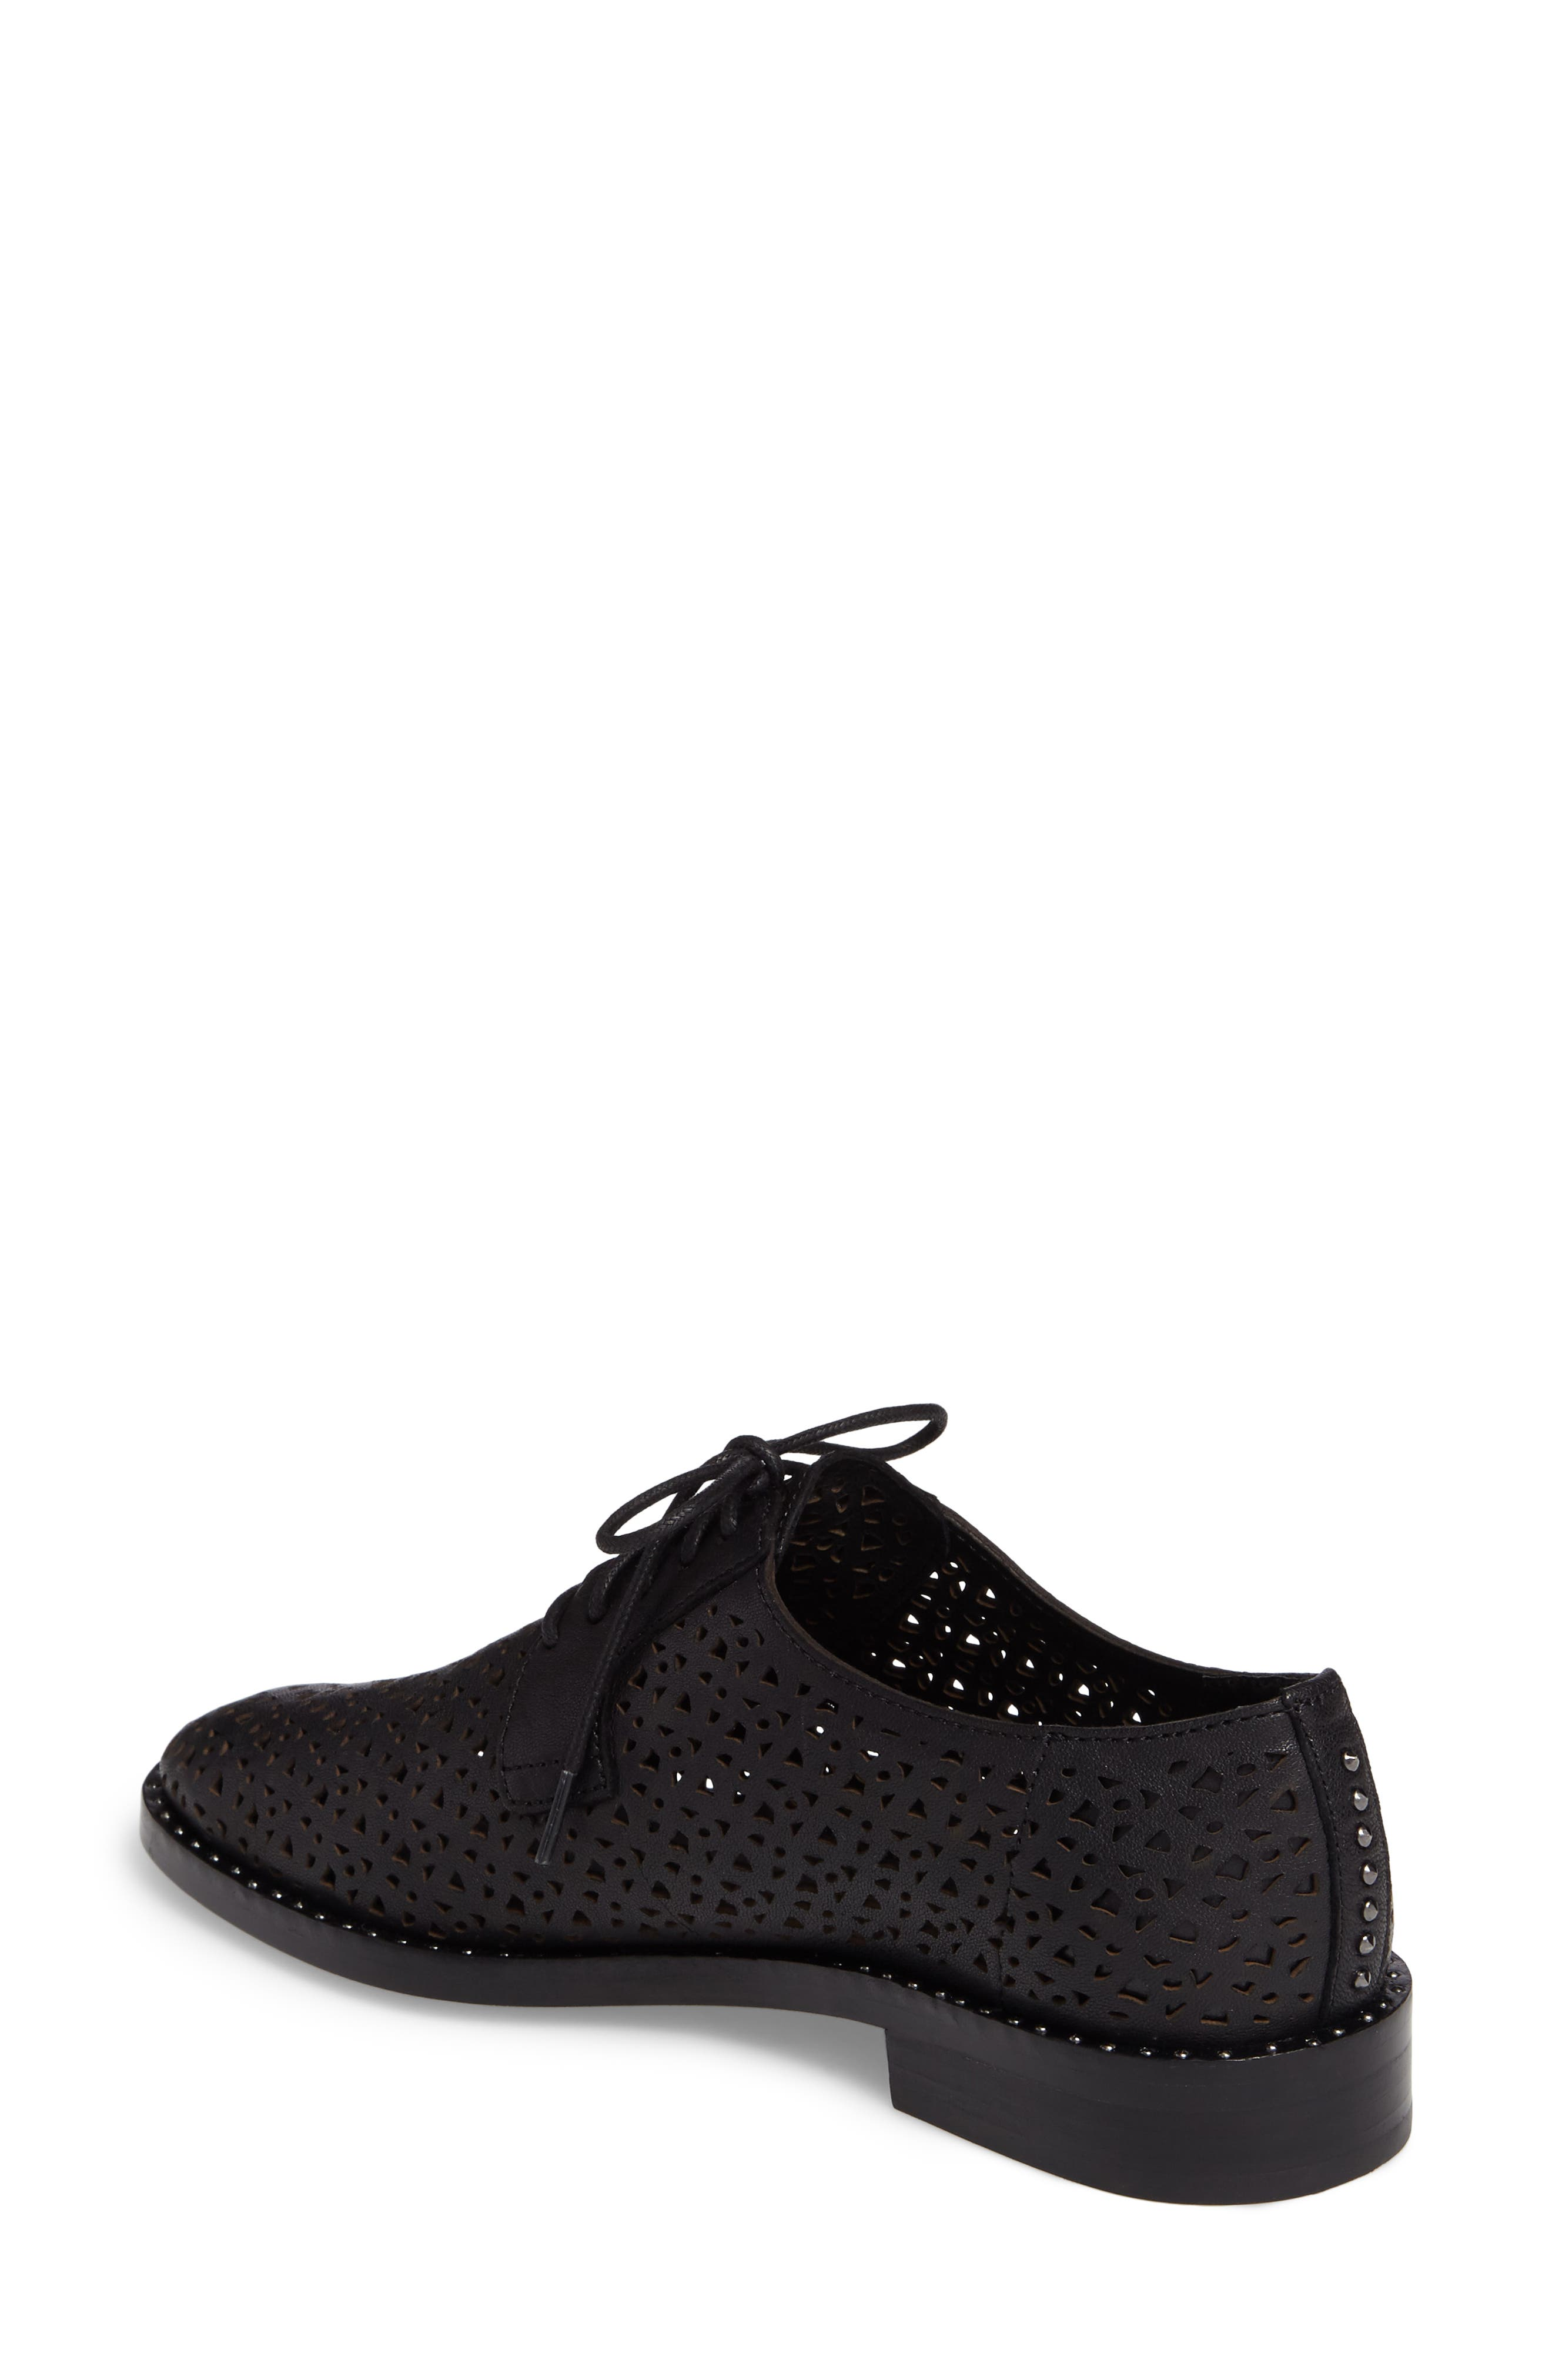 Lesta Geo Perforated Oxford,                             Alternate thumbnail 7, color,